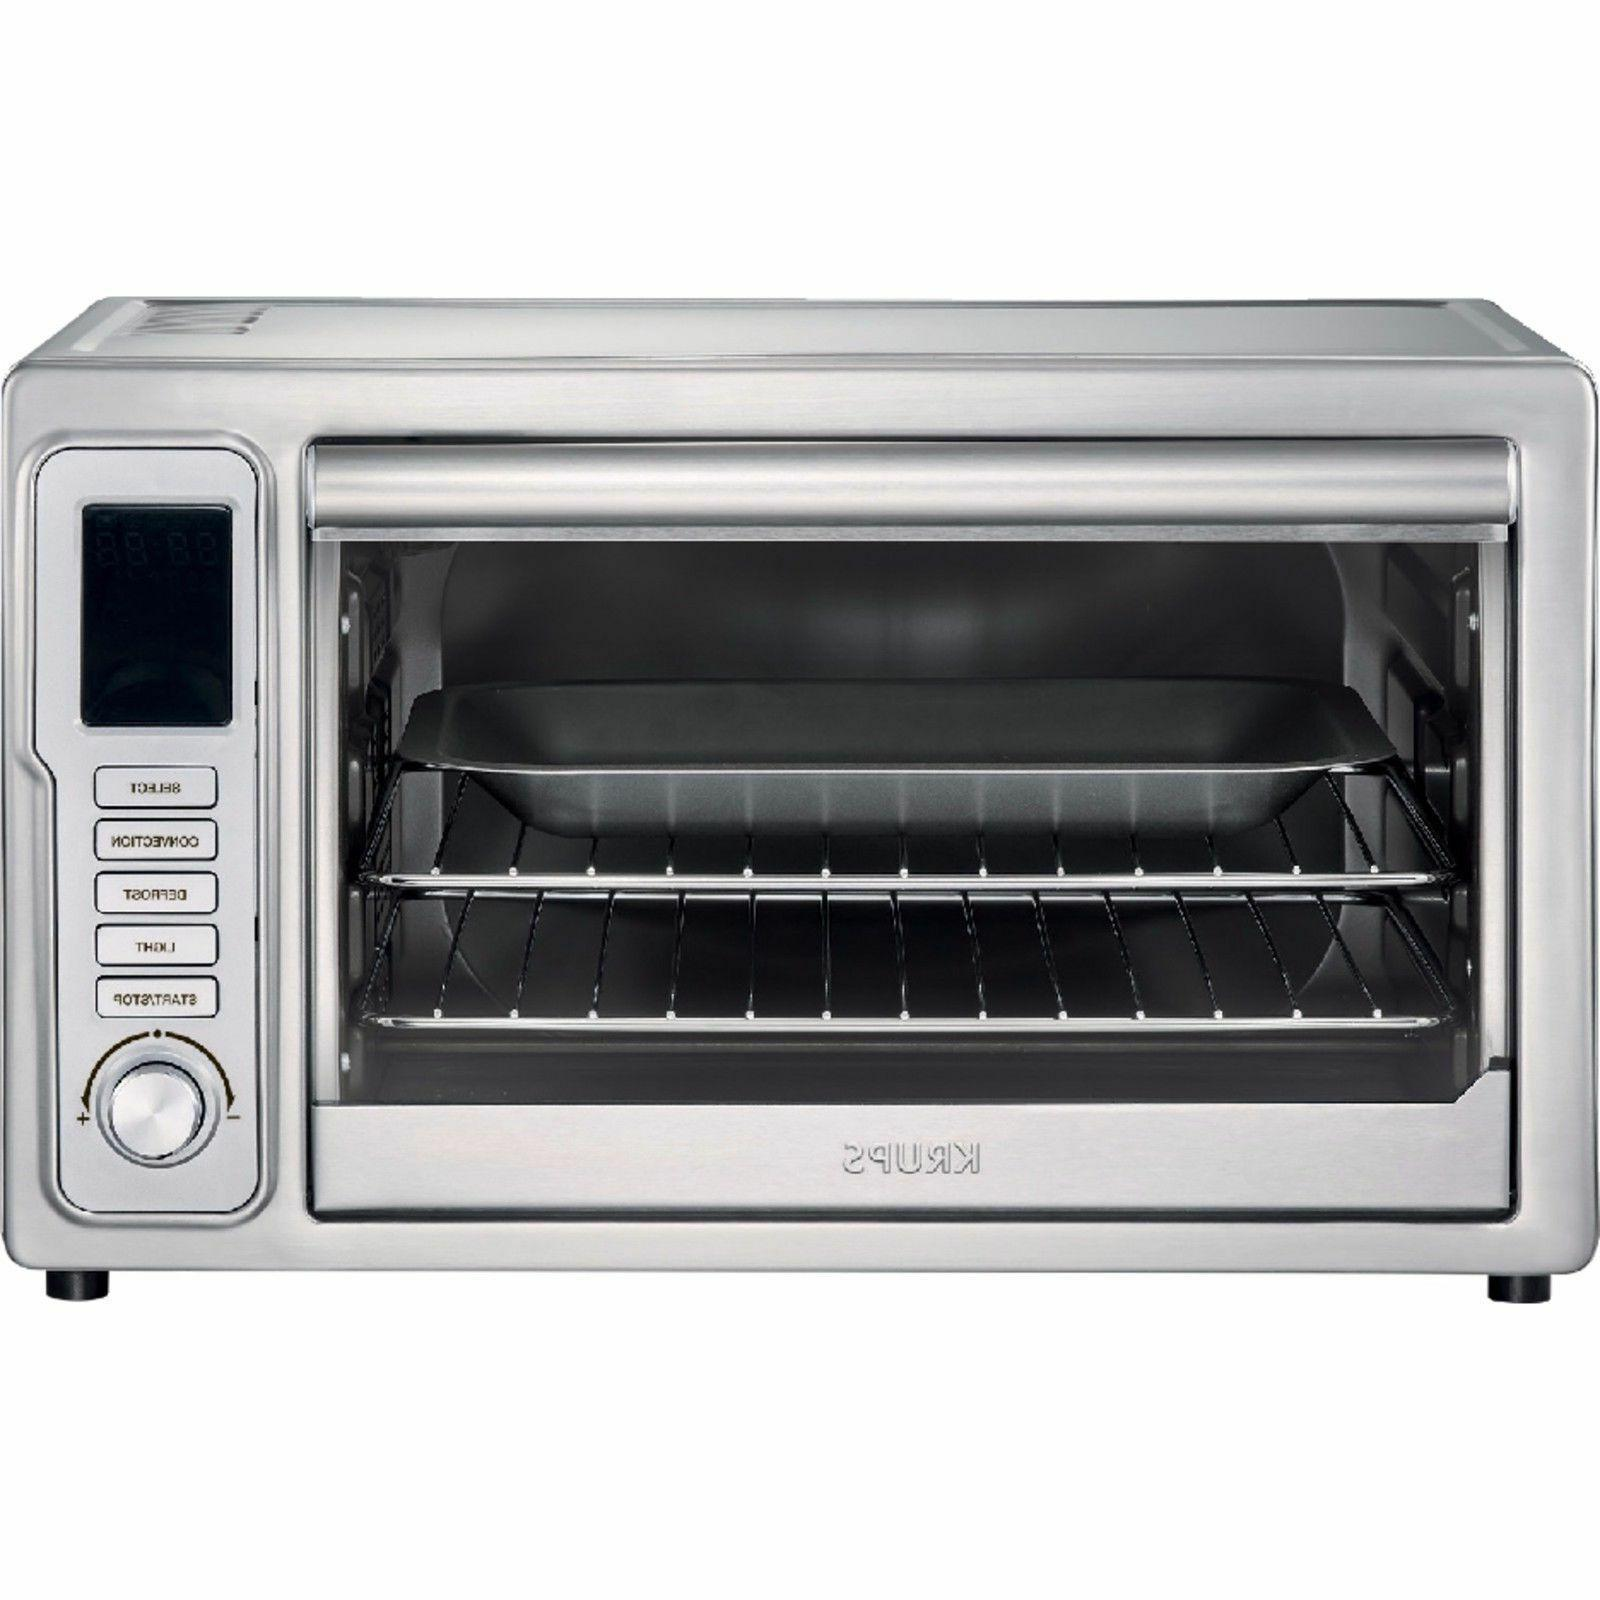 krups deluxe convection toaster oven stainless steel